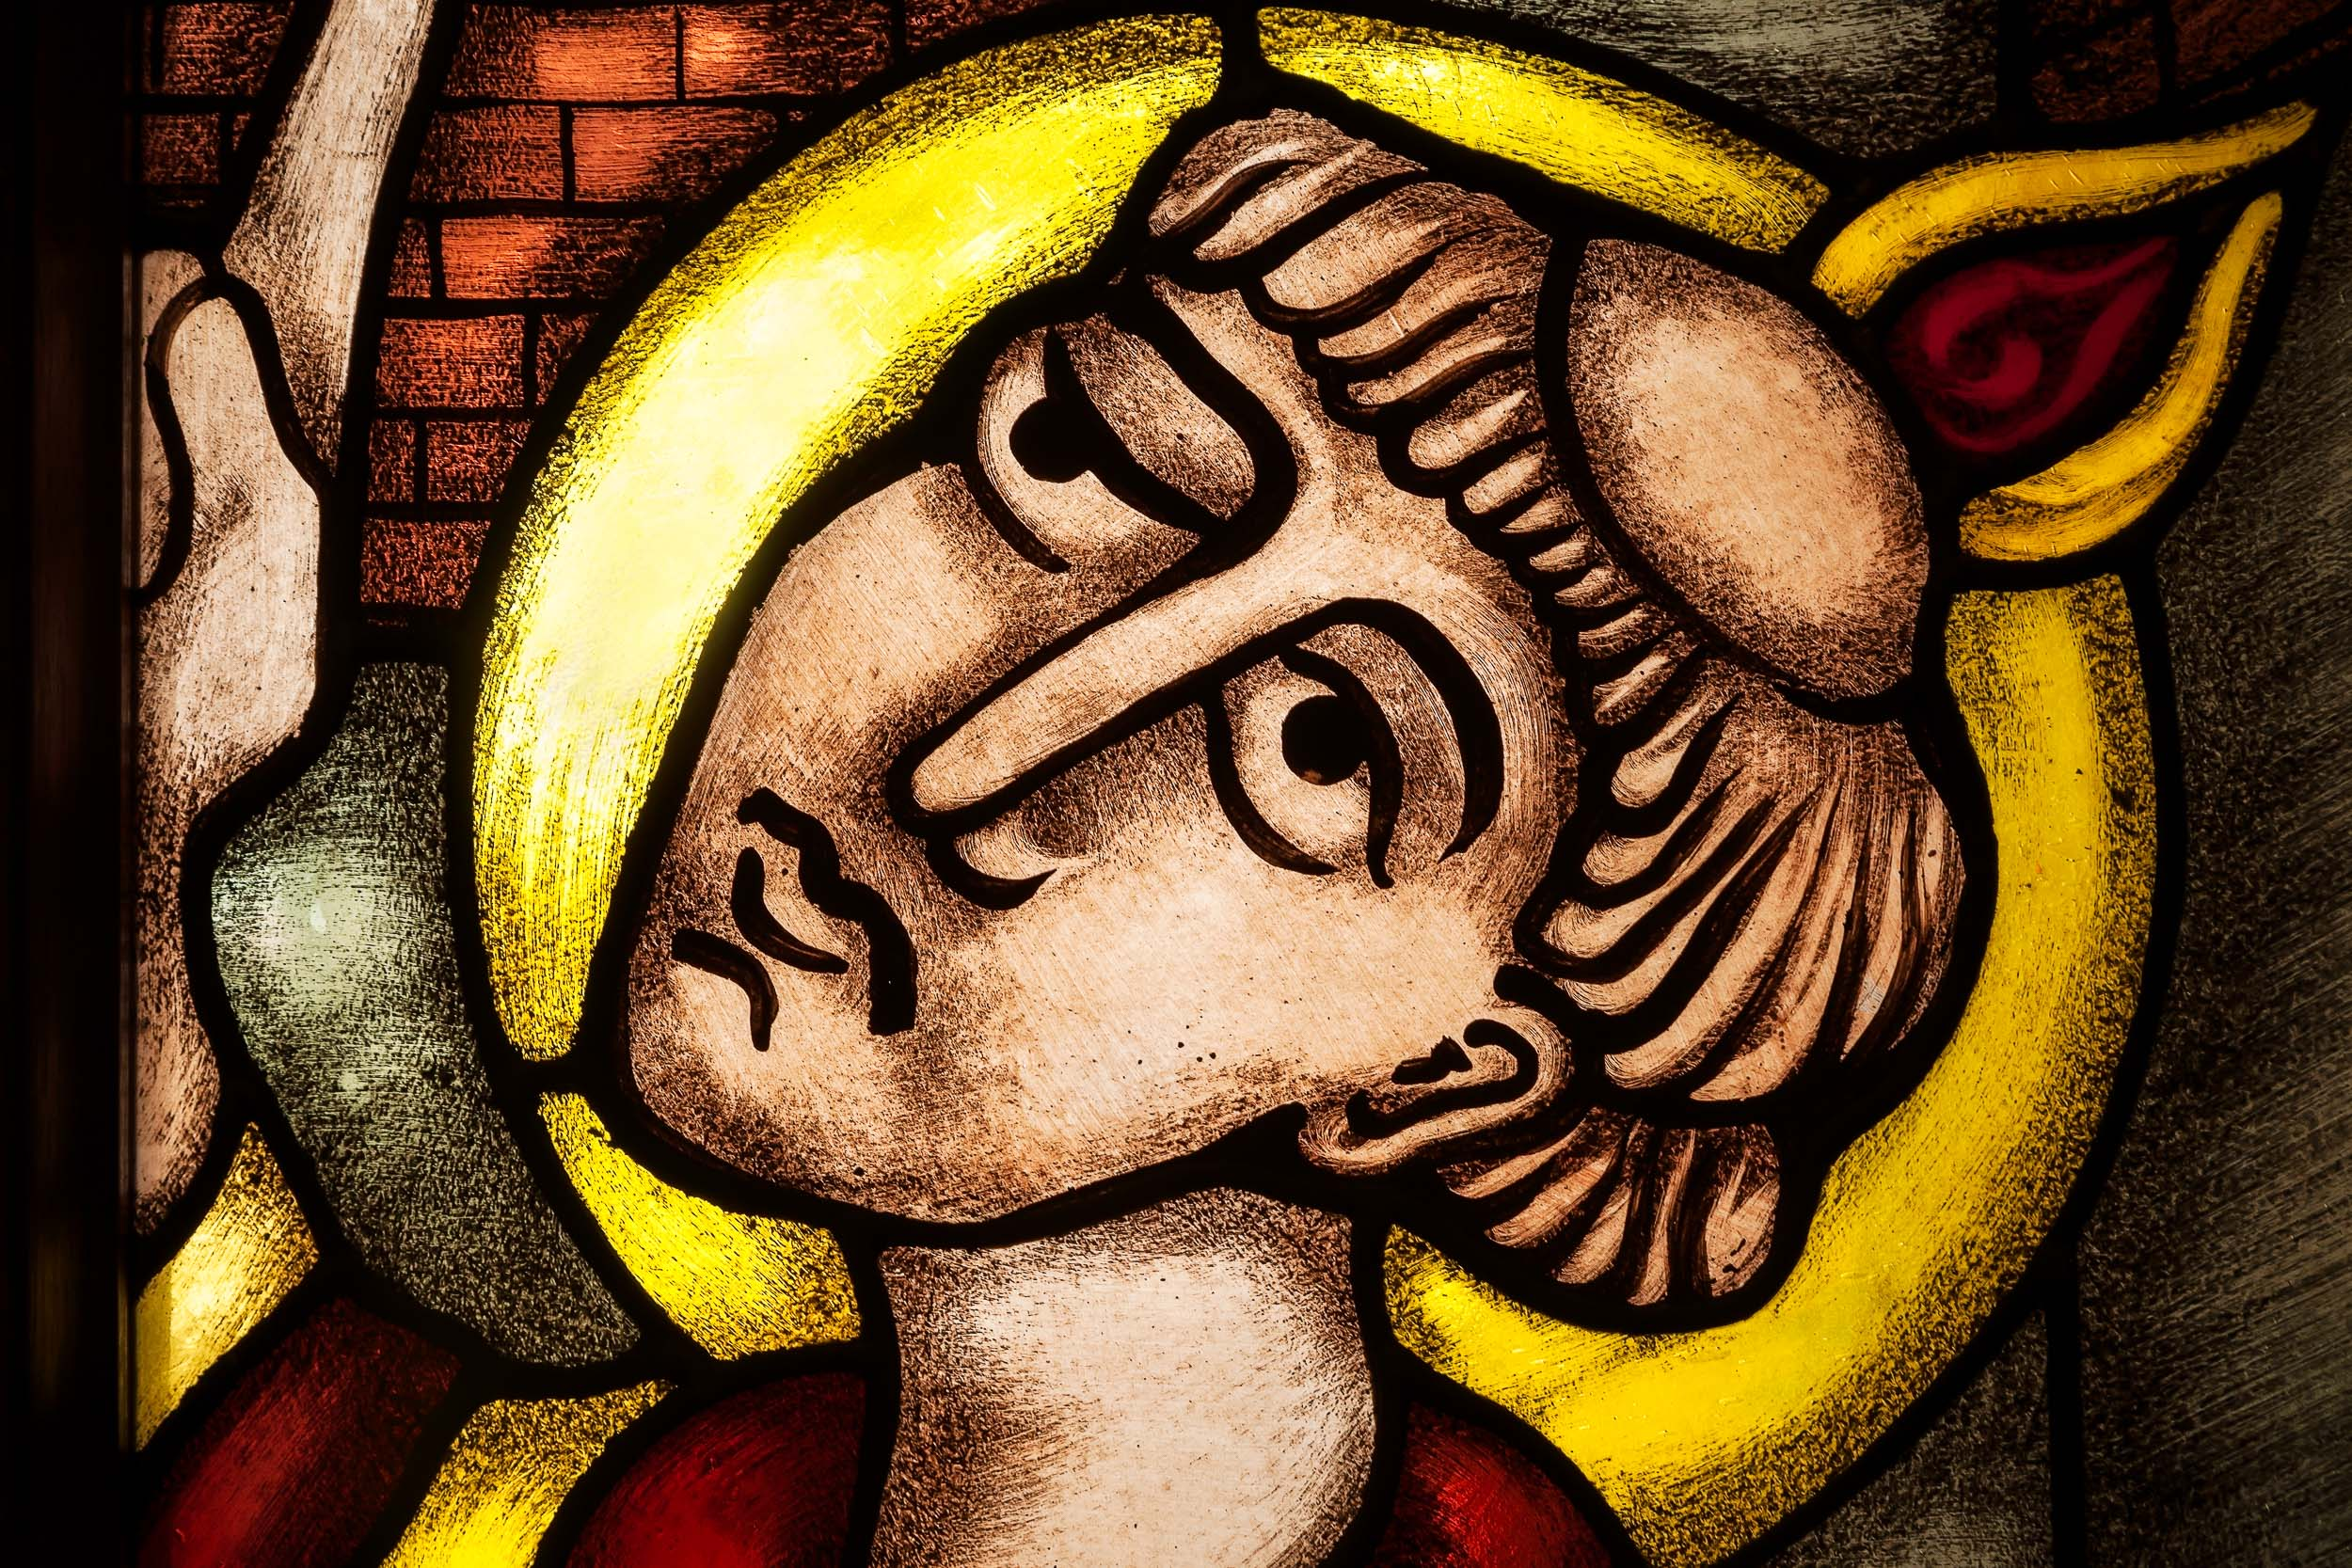 A stunning detail from a  stained glass window  in  St. Mary's Catholic Church  in  Hamilton, Australia .